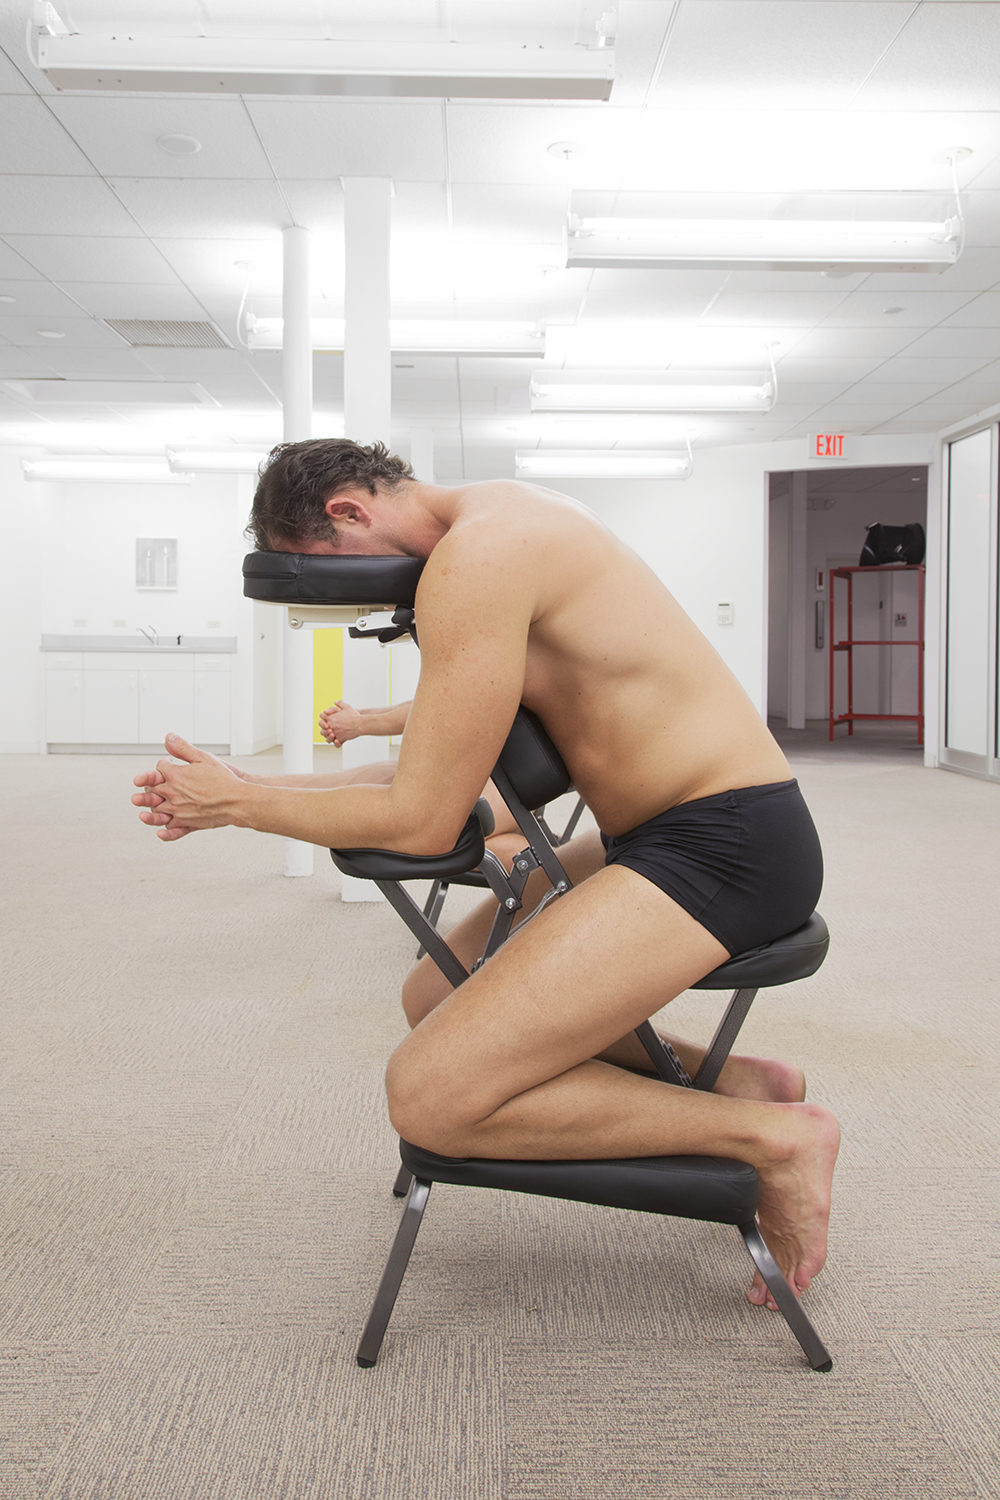 ALEX PERWEILER / ZACHARY SUSSKIND  On Relief (Cristian, South Florida) , 2013 Man on massage chair Dimensions variable